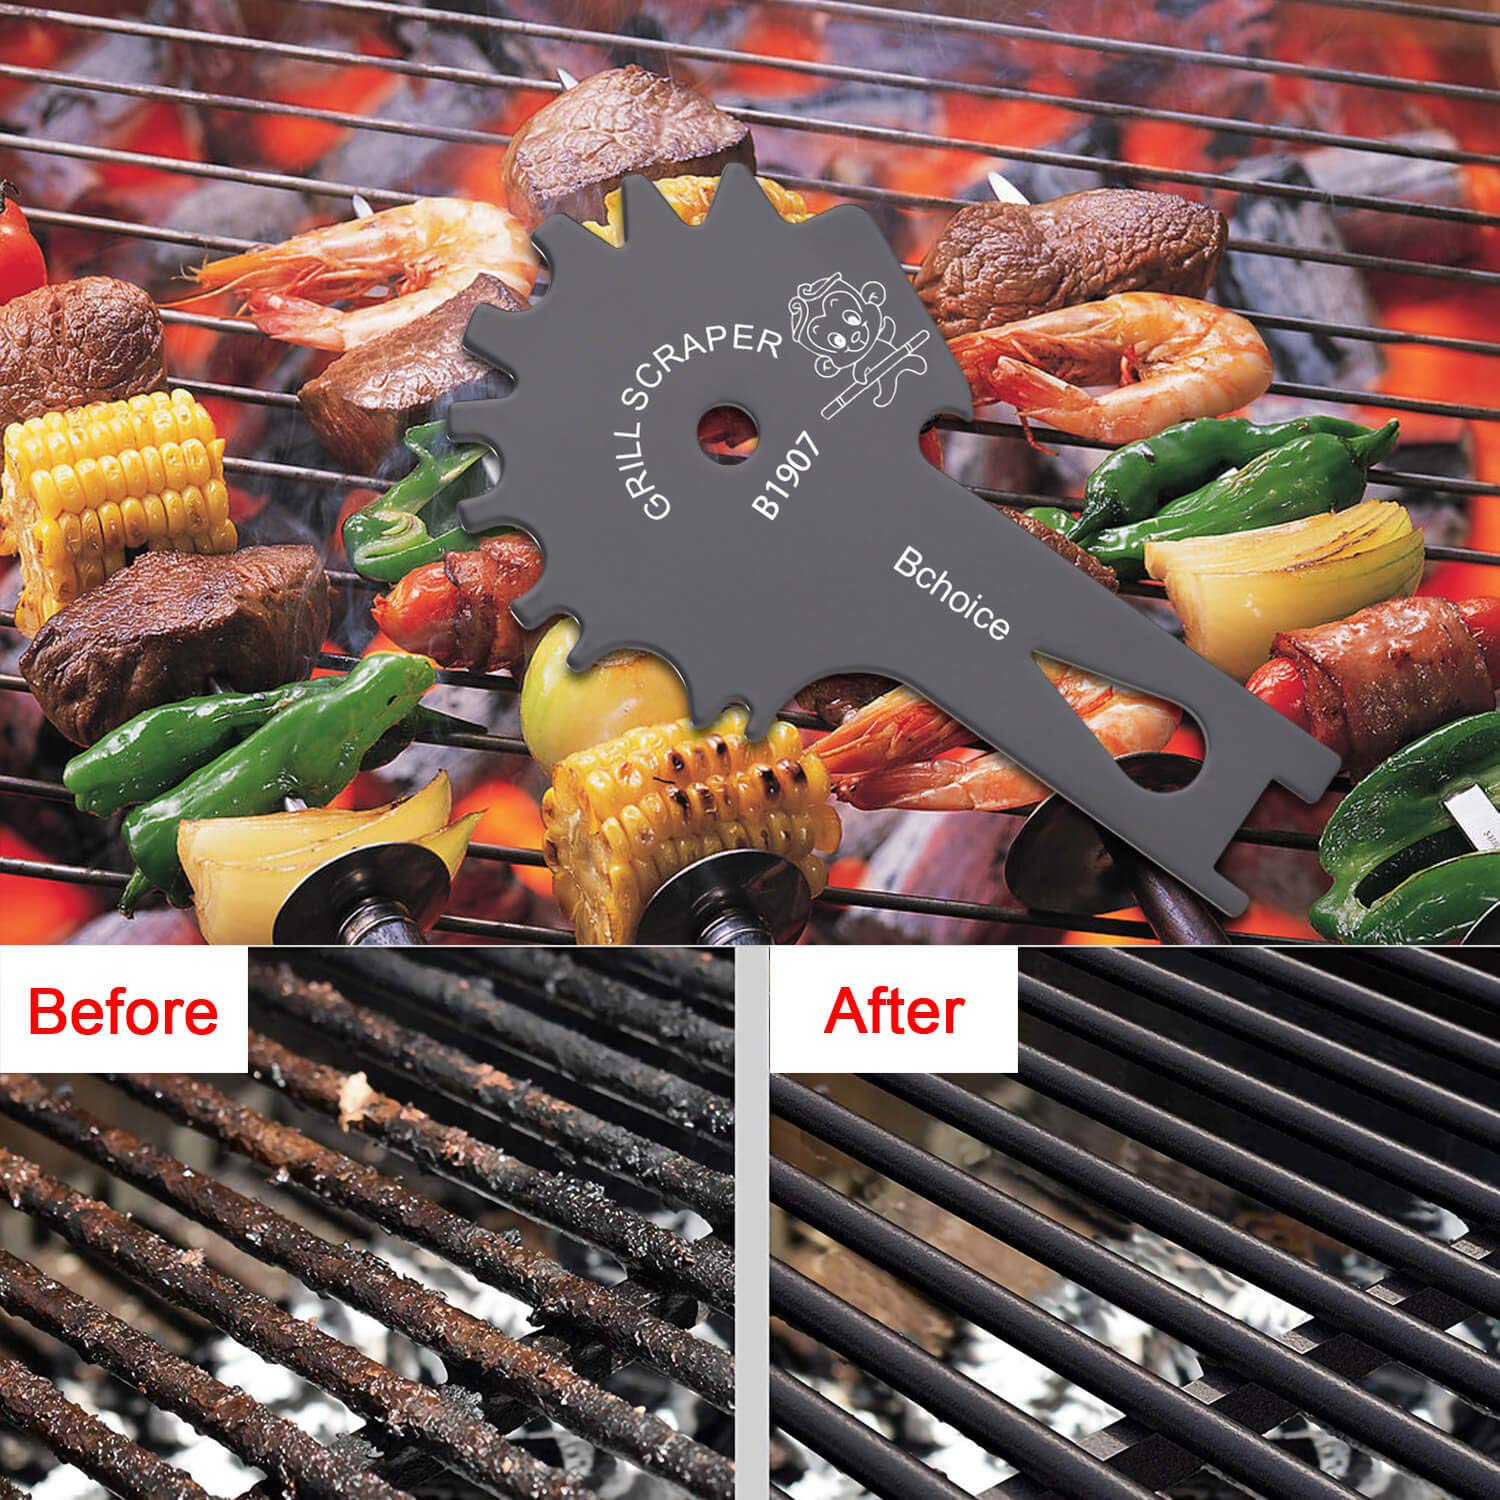 Bchoice Stainless Steel BBQ Grill Scraper Brushes- Grill Grate Scrapers Cleaner Barbecue Non-bristles Grill Brush Perfect BBQ Cleaning Tools - Works with Most Grill Grates, Grey